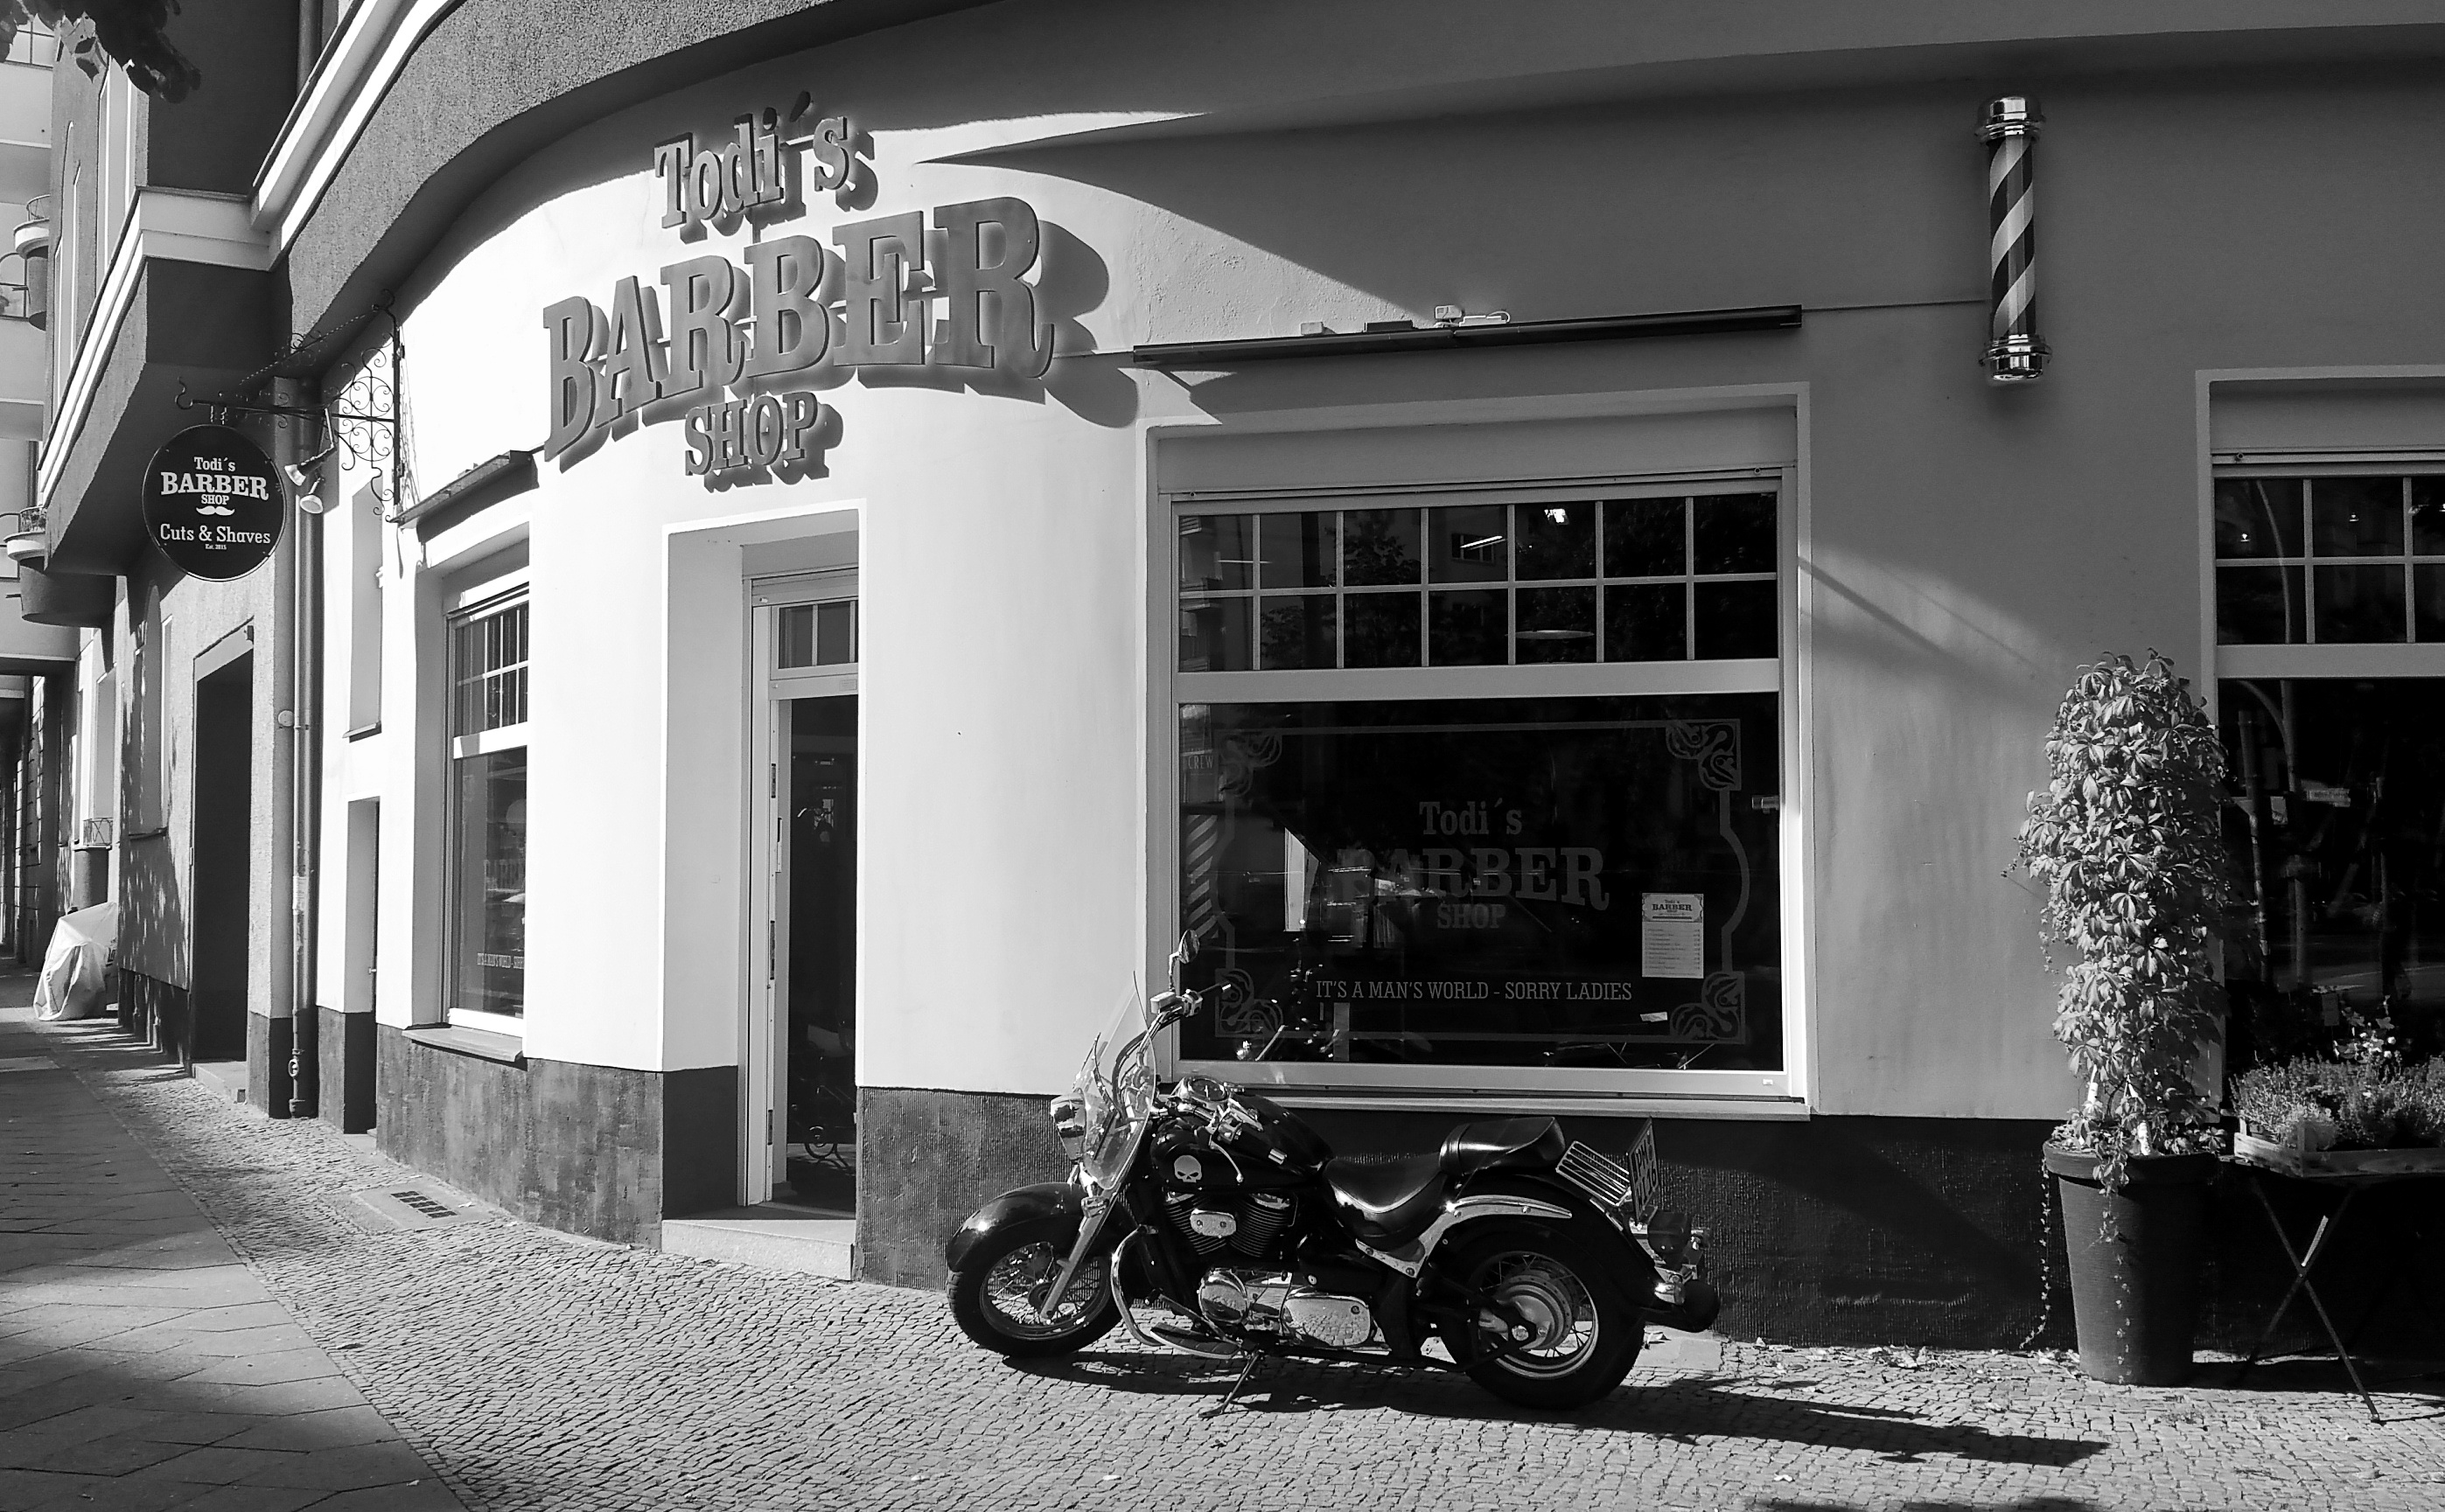 Todi's Barbershop Black and white